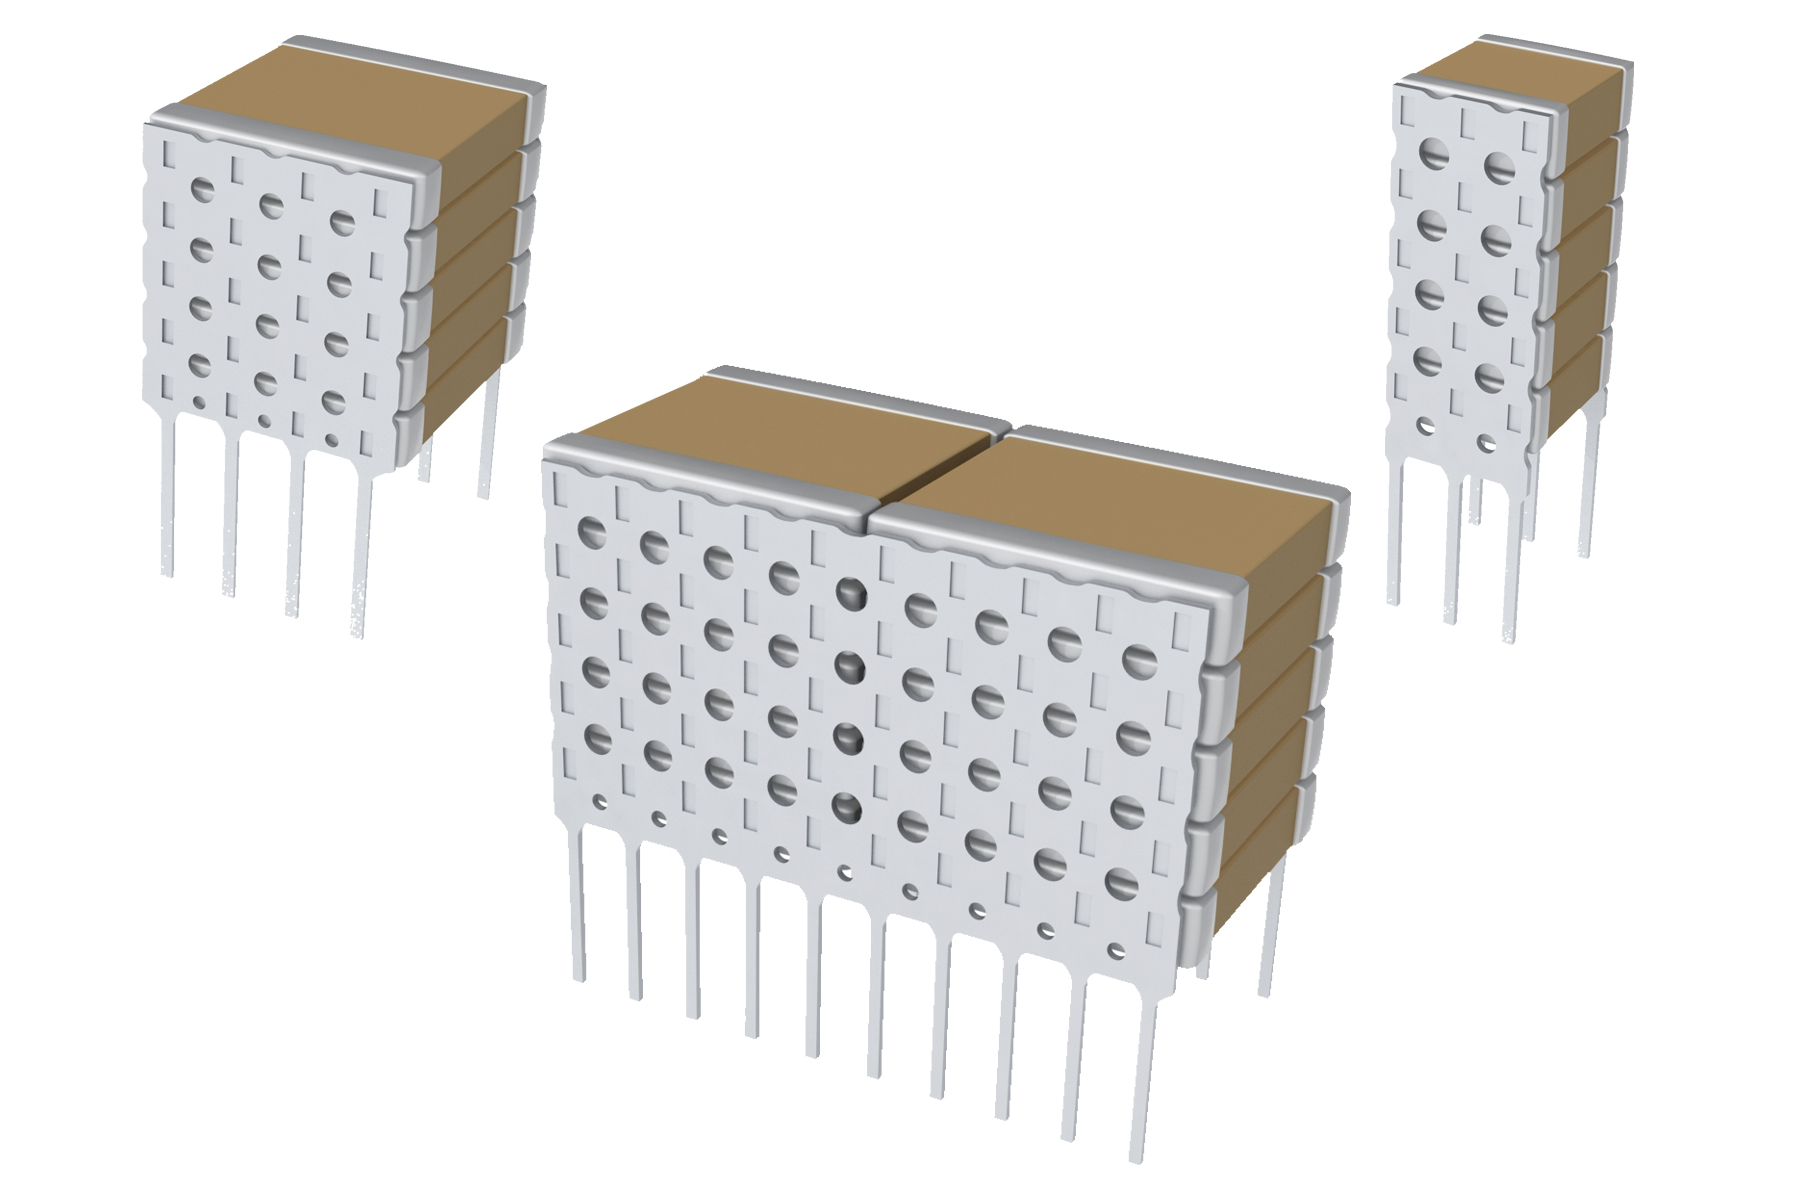 High-Temperature Bulk Capacitance Solution Suitable for Harsh Environment Applications